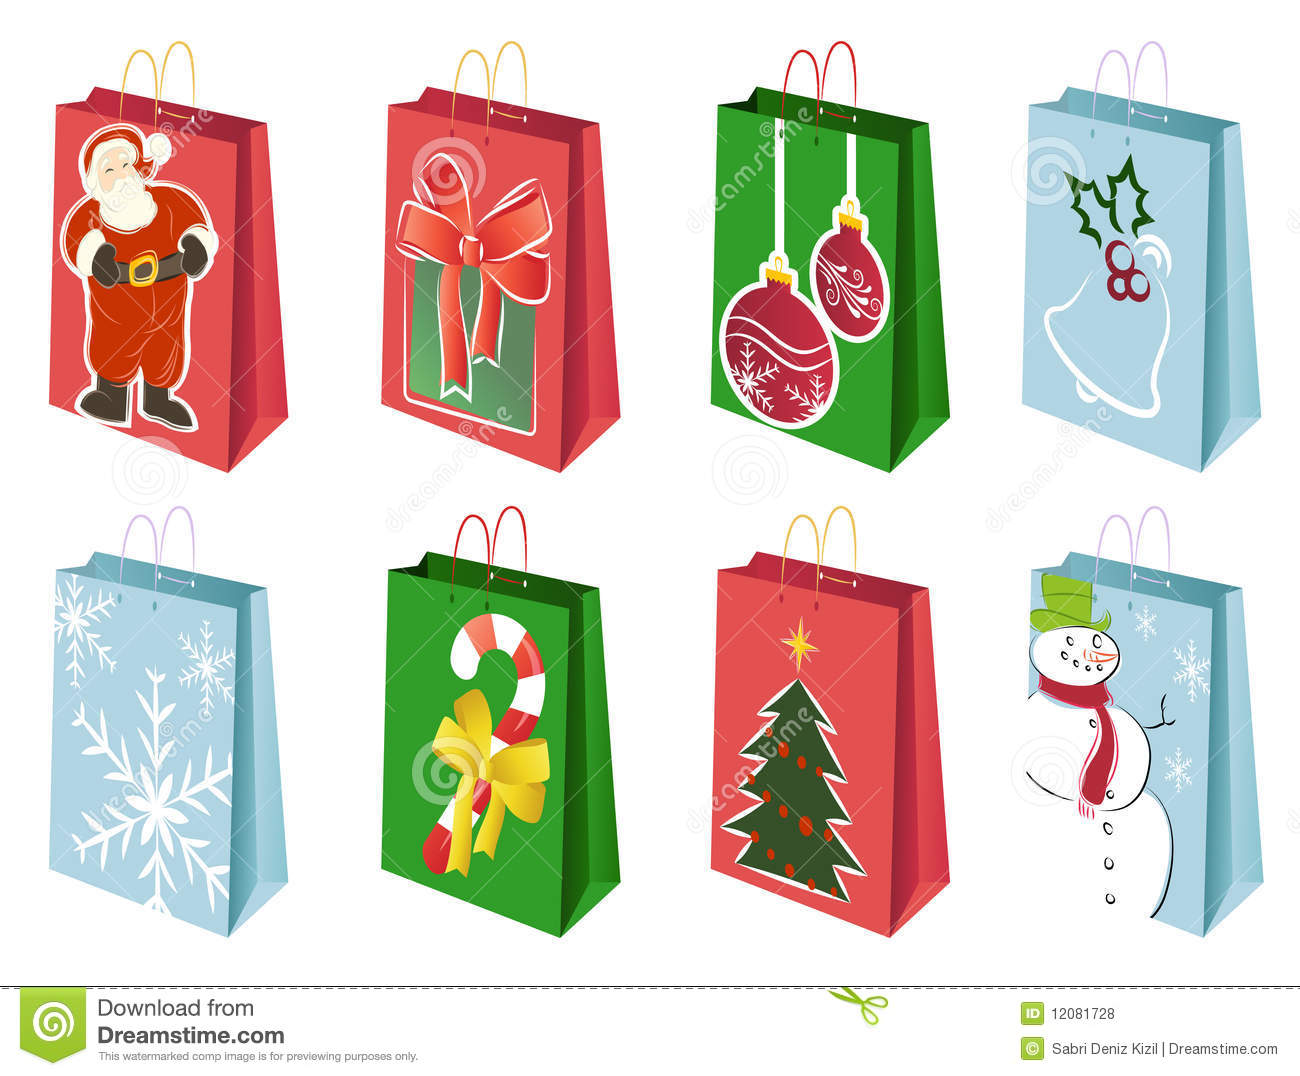 Christmas Shopping Bags Royalty Free Stock Photos - Image: 12081728